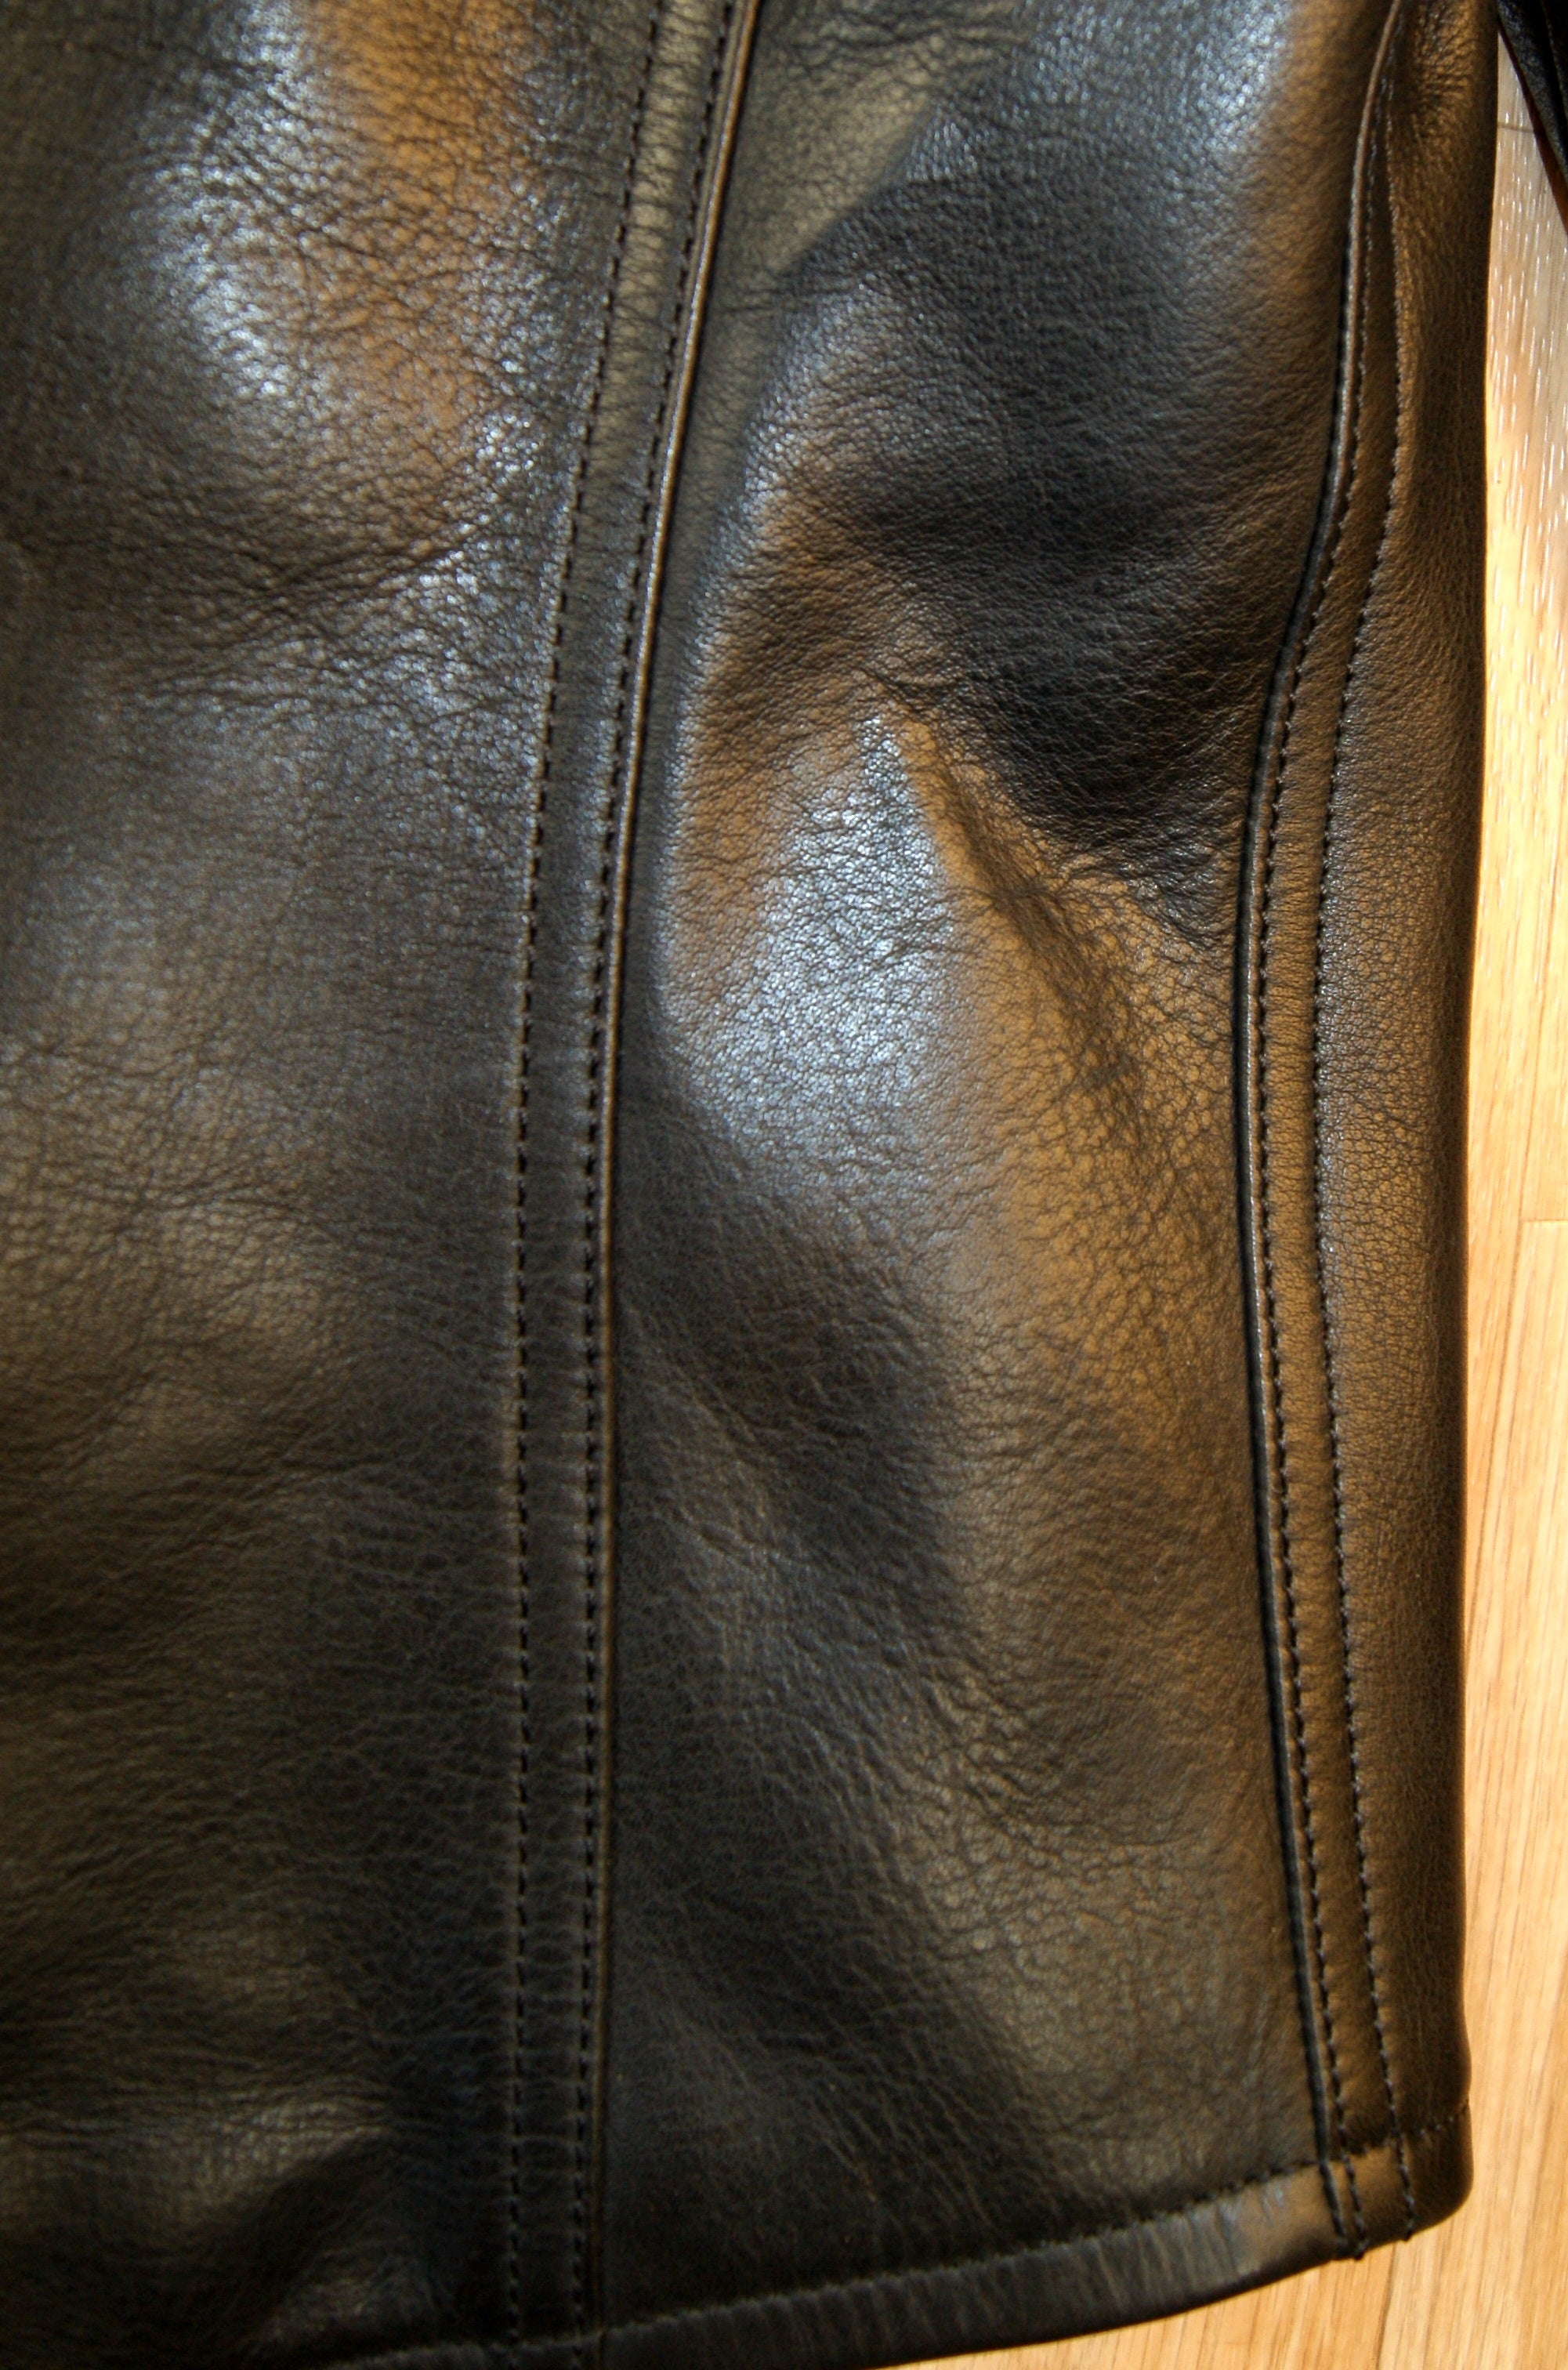 Thedi Phenix Cafe Racer Jacket, size Medium, Black Horsehide